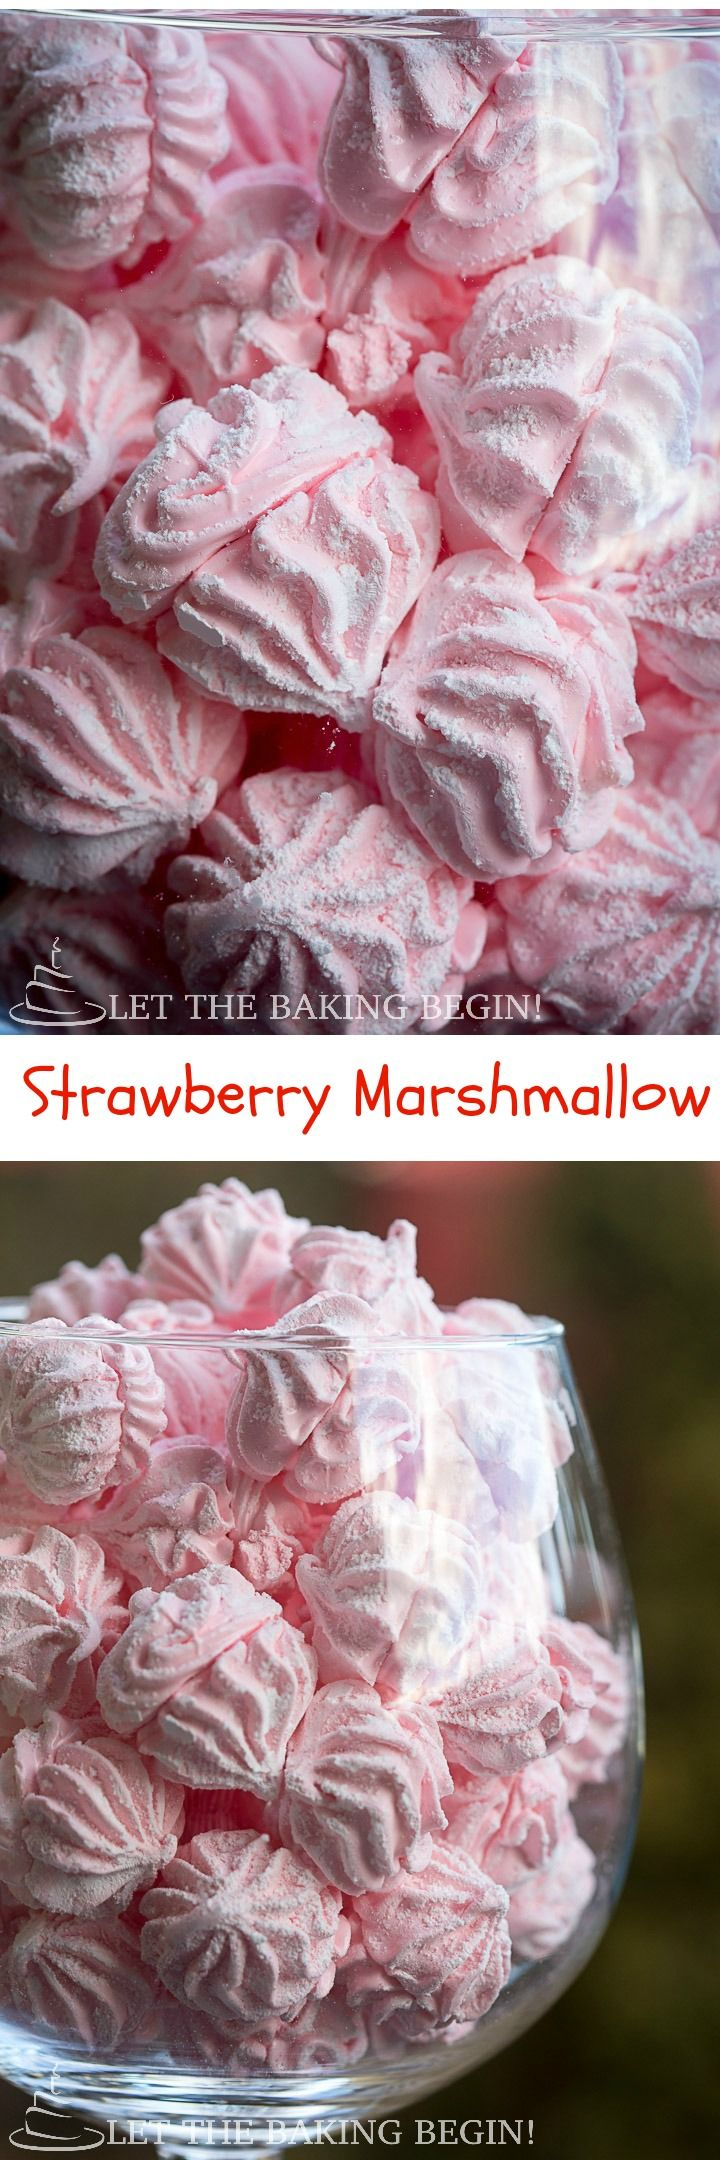 Strawberry Marshmallow -naturally gluten free, light and airy these little confections are perfect for parties, or as a light dessert treat after dinner. by LetTheBakingBeginBlog.com | @Letthebakingbgn